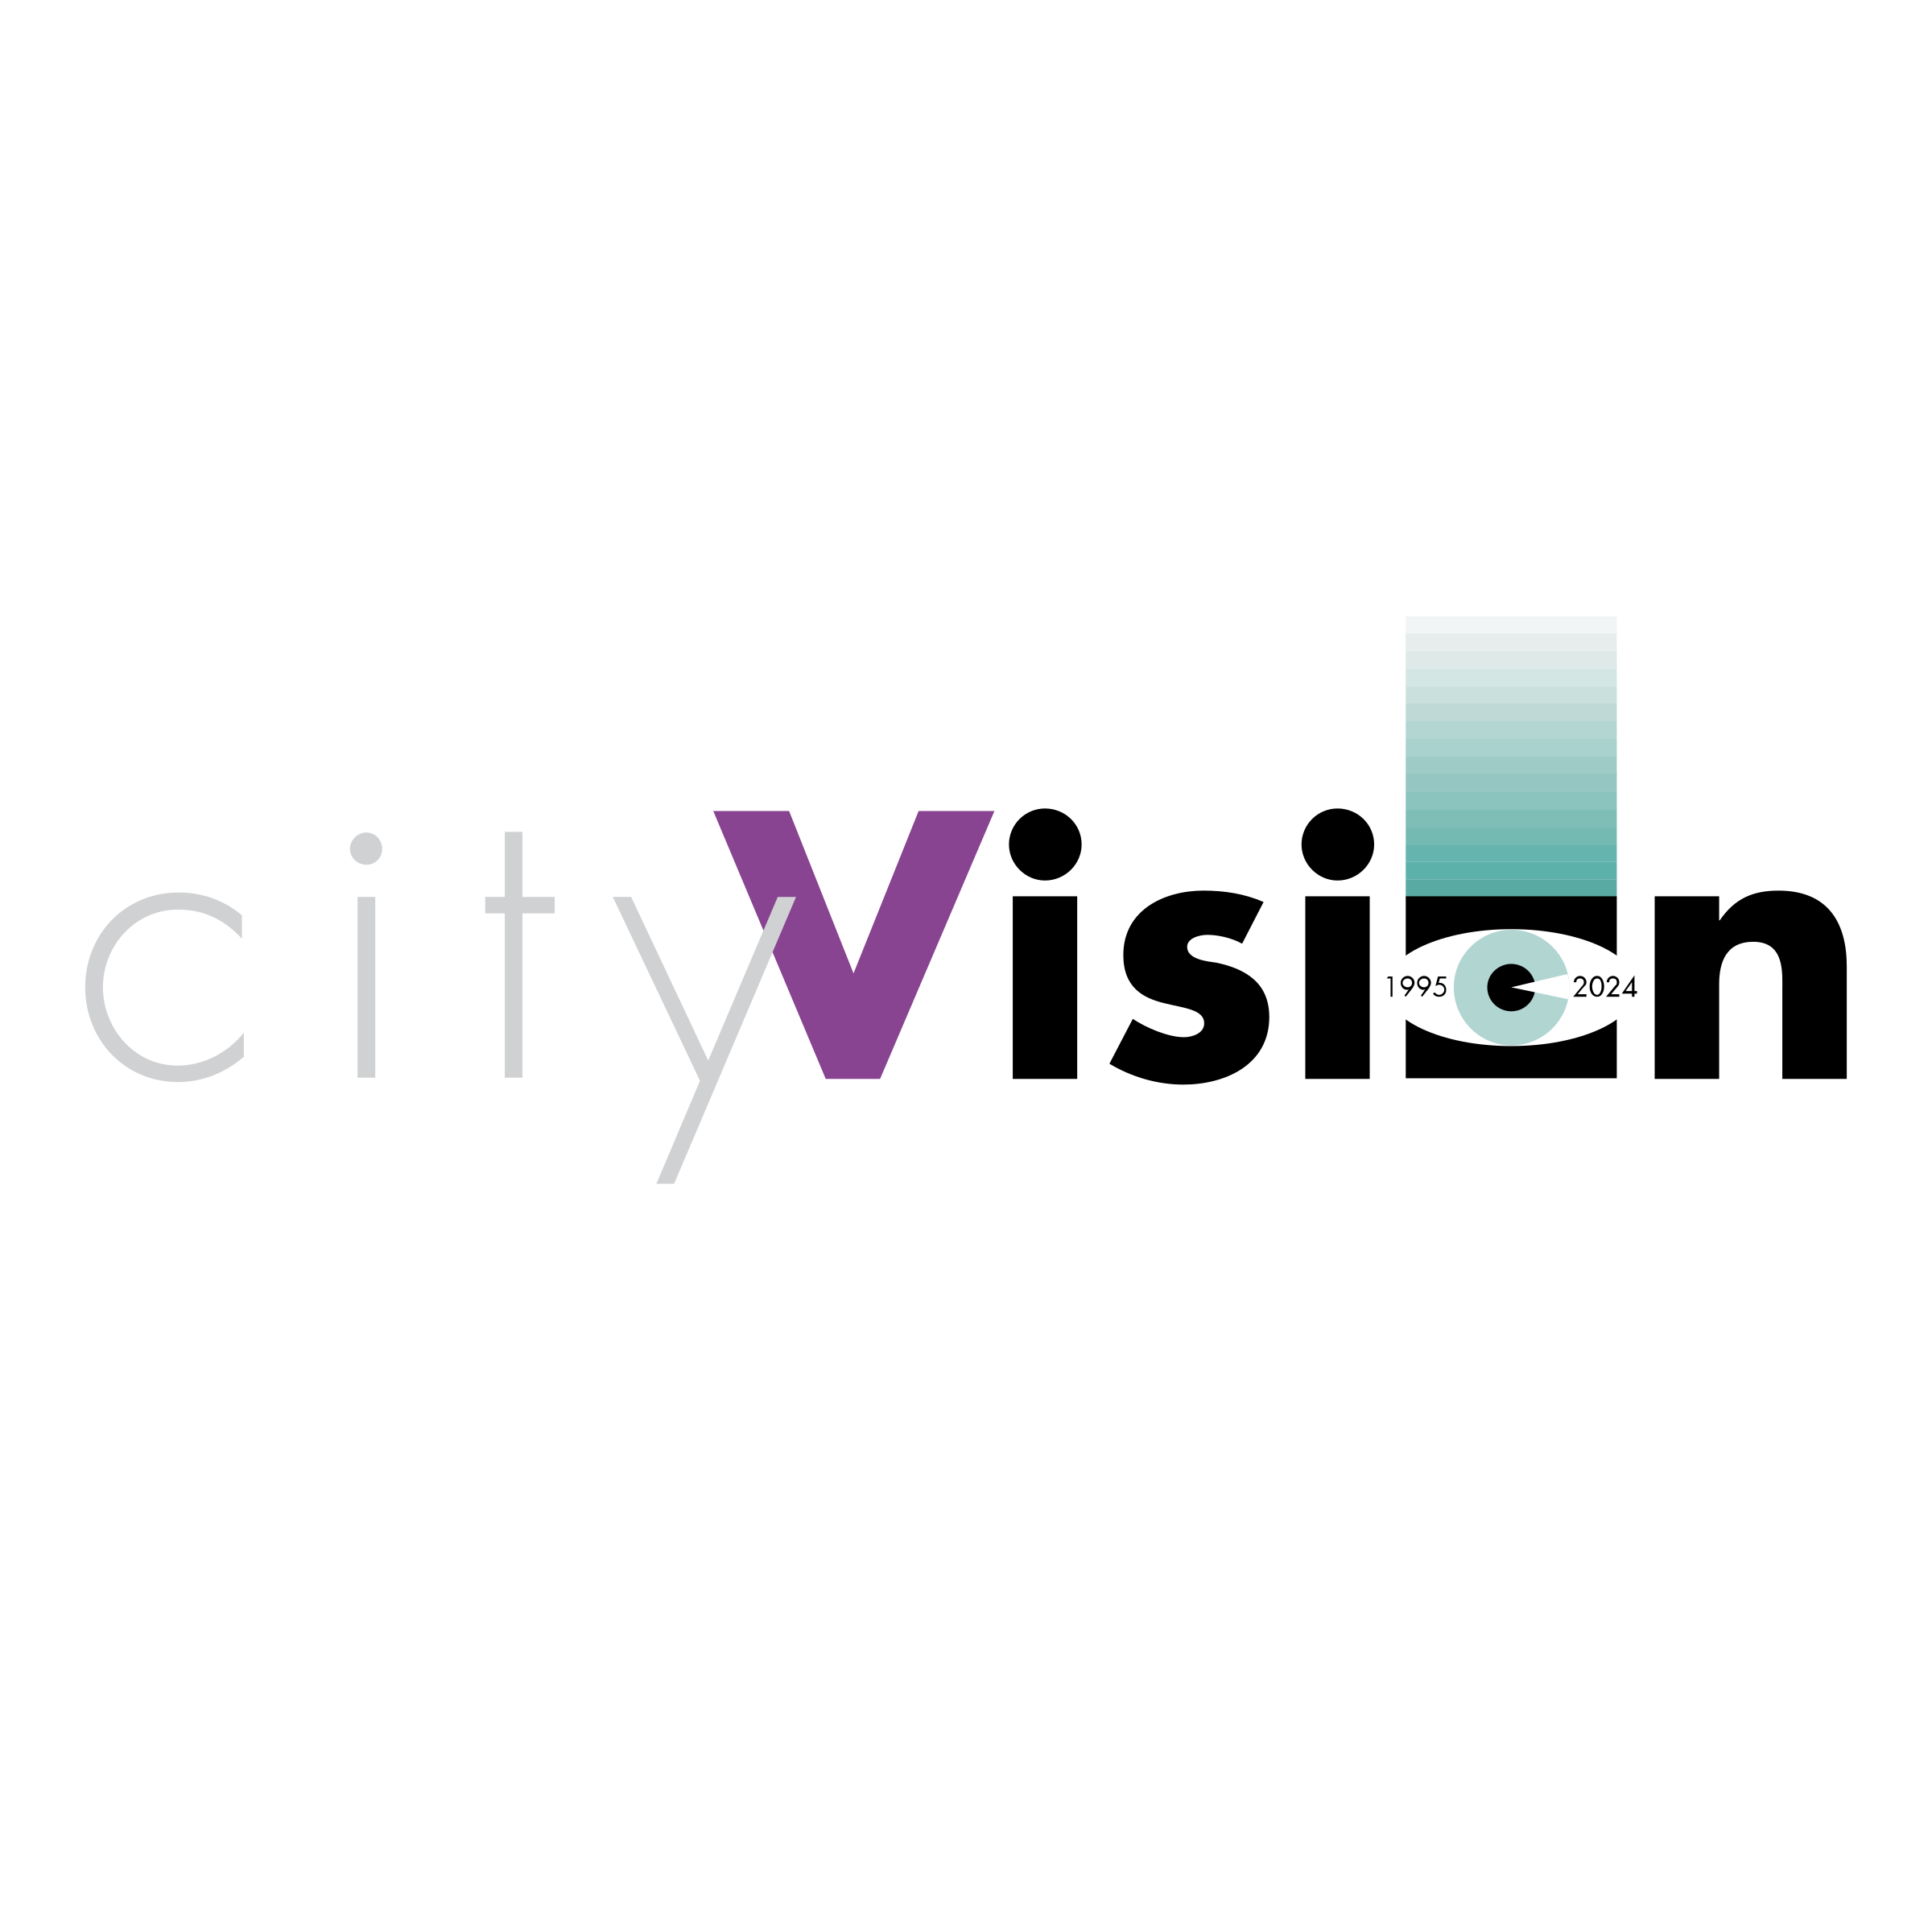 Vision vector logo design. City png transparent svg